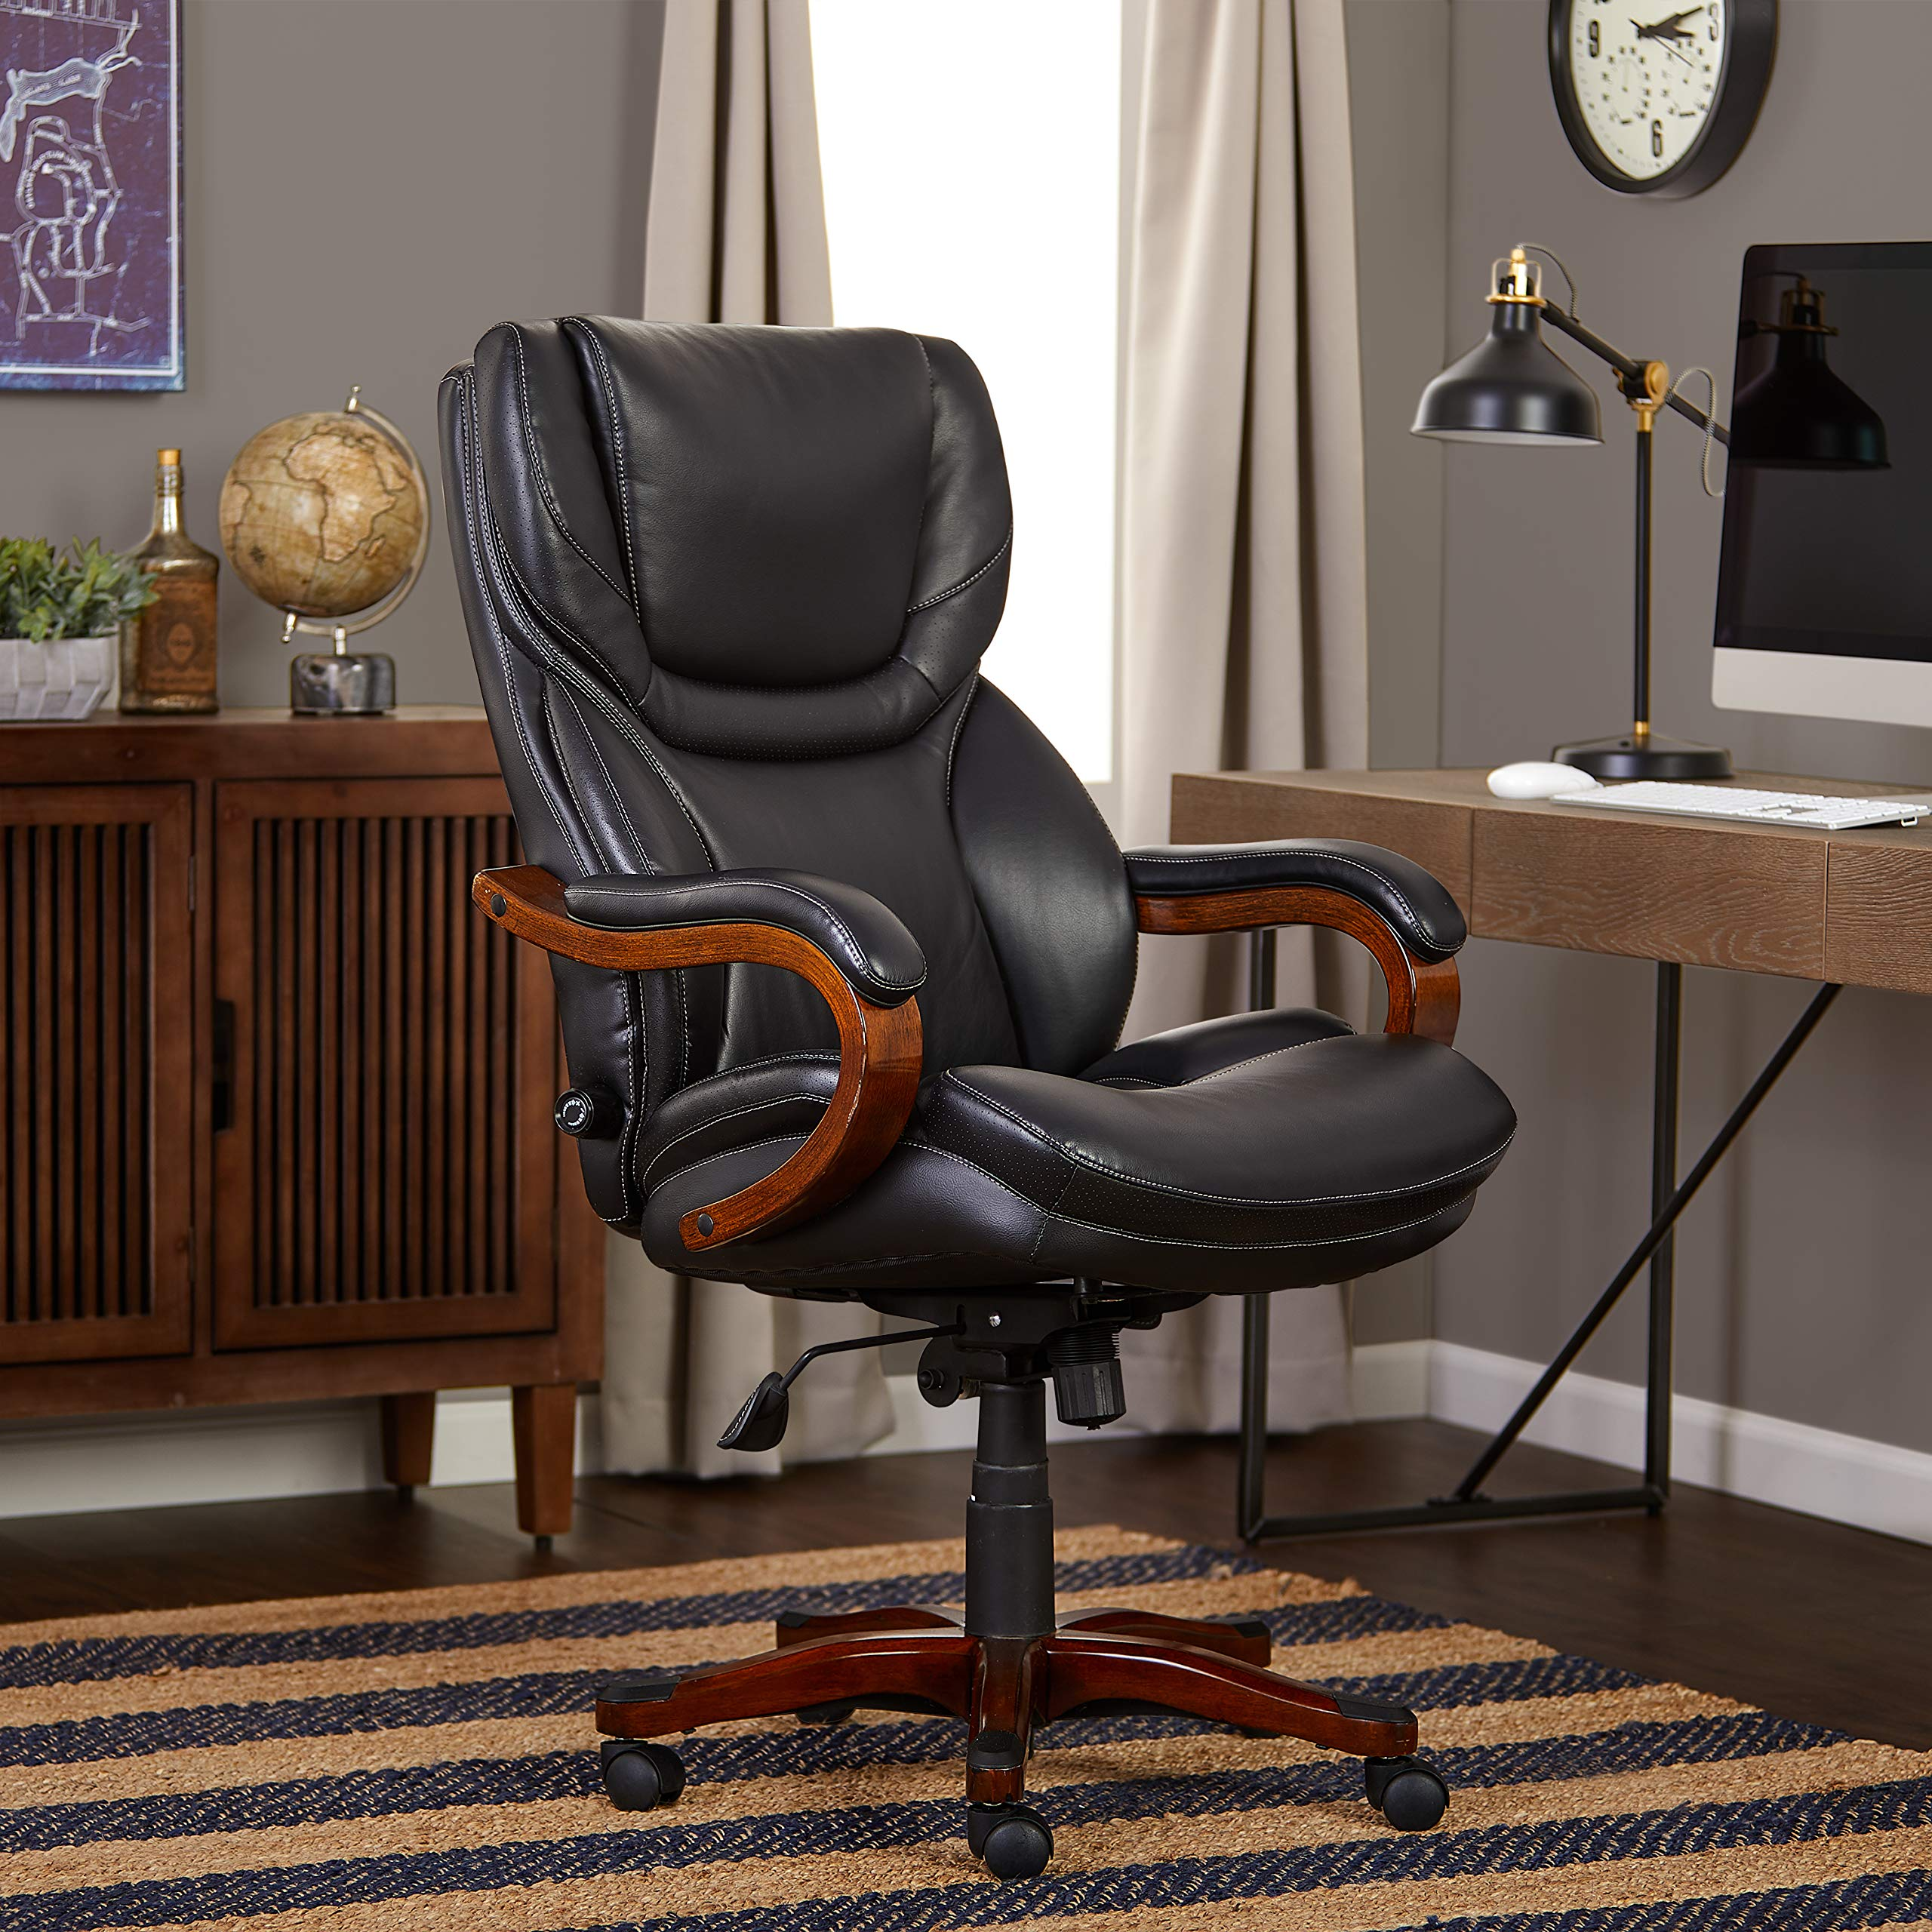 Serta Executive Office Chair in Black Bonded Leather by Serta